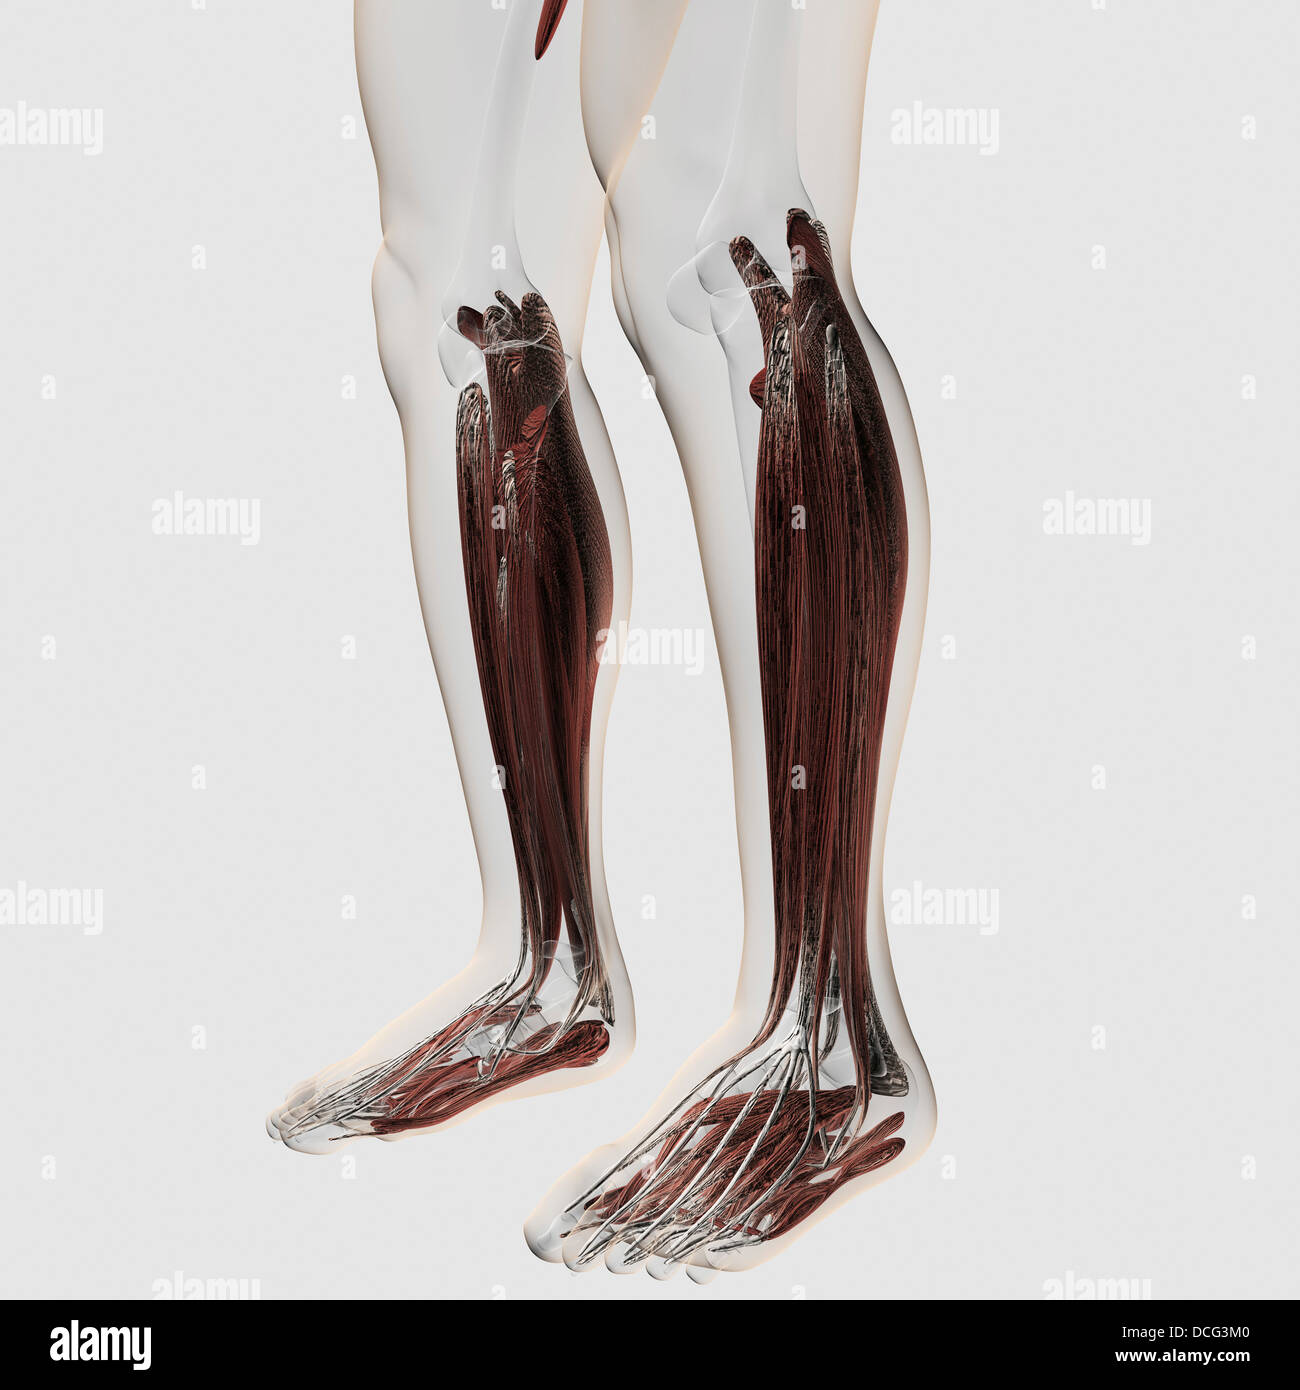 Male muscle anatomy of the human legs, anterior view. - Stock Image